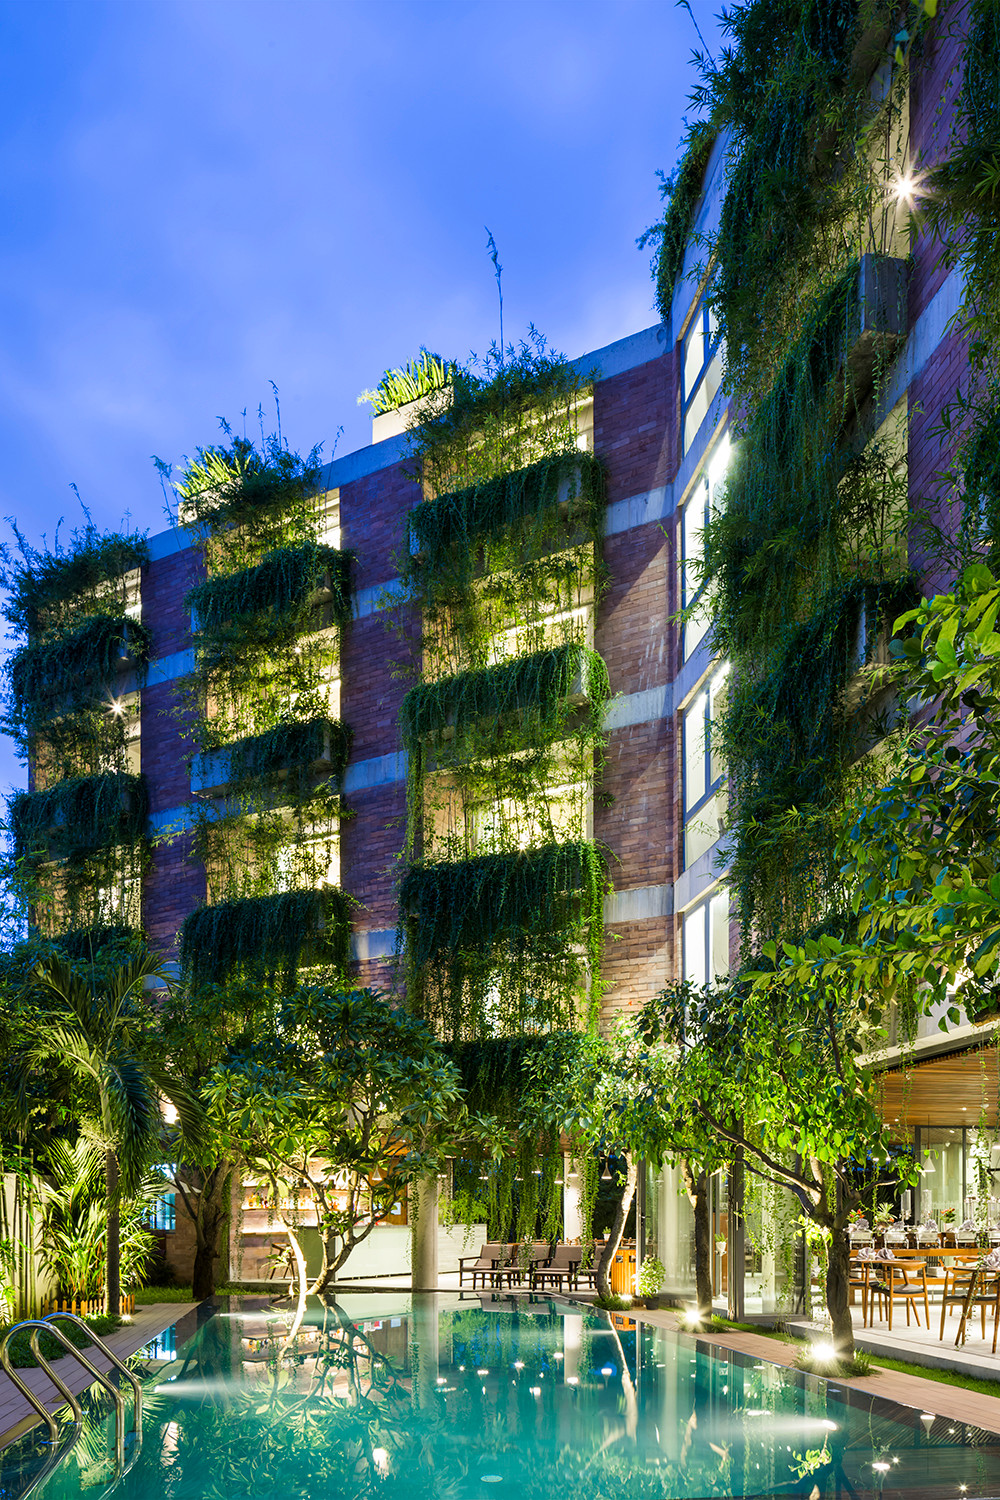 The Atlas Hotel, Hoi An Old Town | VTN Architects